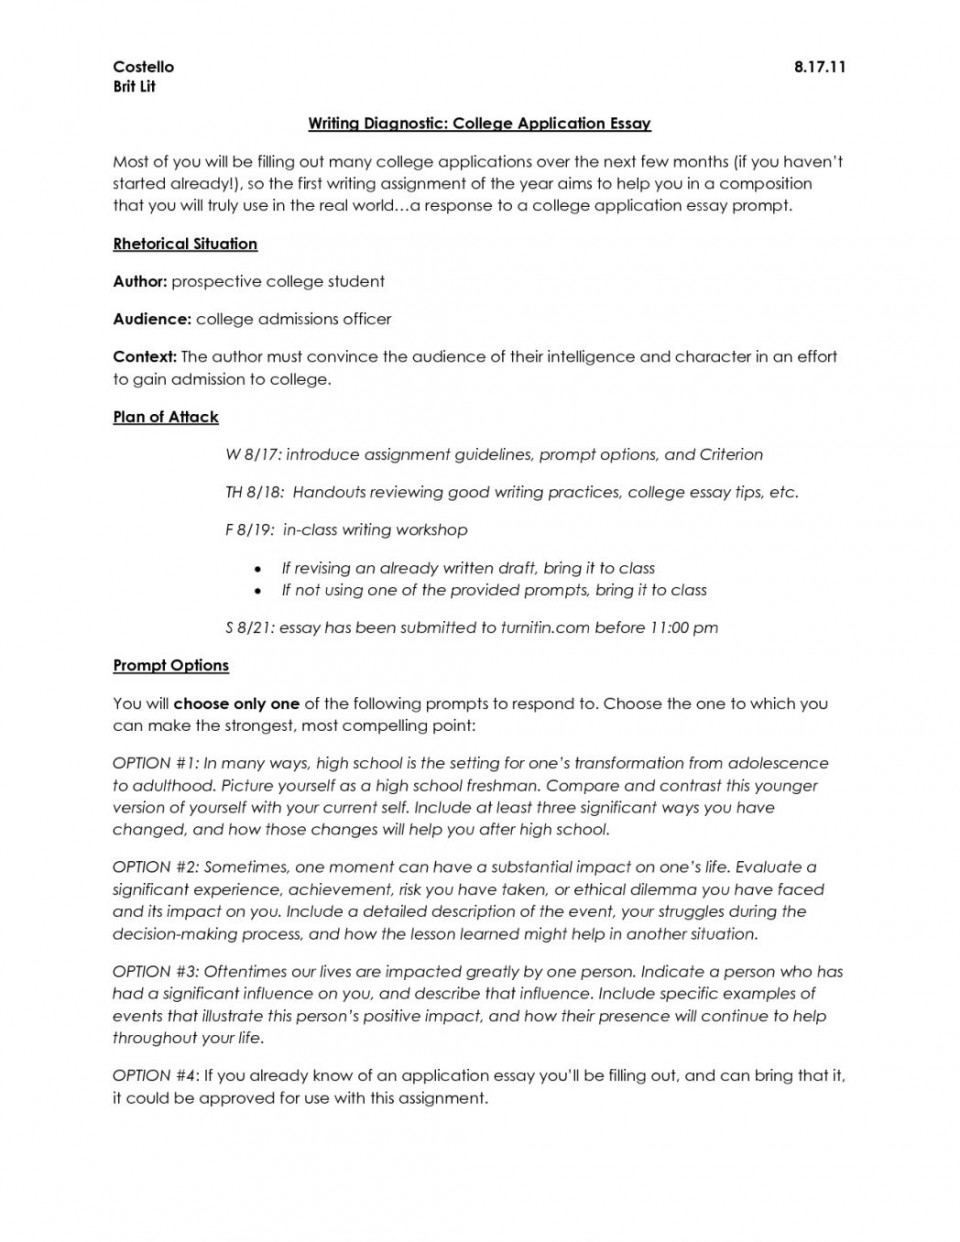 019 Essay Example College Examples Printables Corner Penn State Prompt Best Ideas Of Uf Application Rega Schreyer Honors Length Essays Stirring Samples Prompts 2017 Uc 960